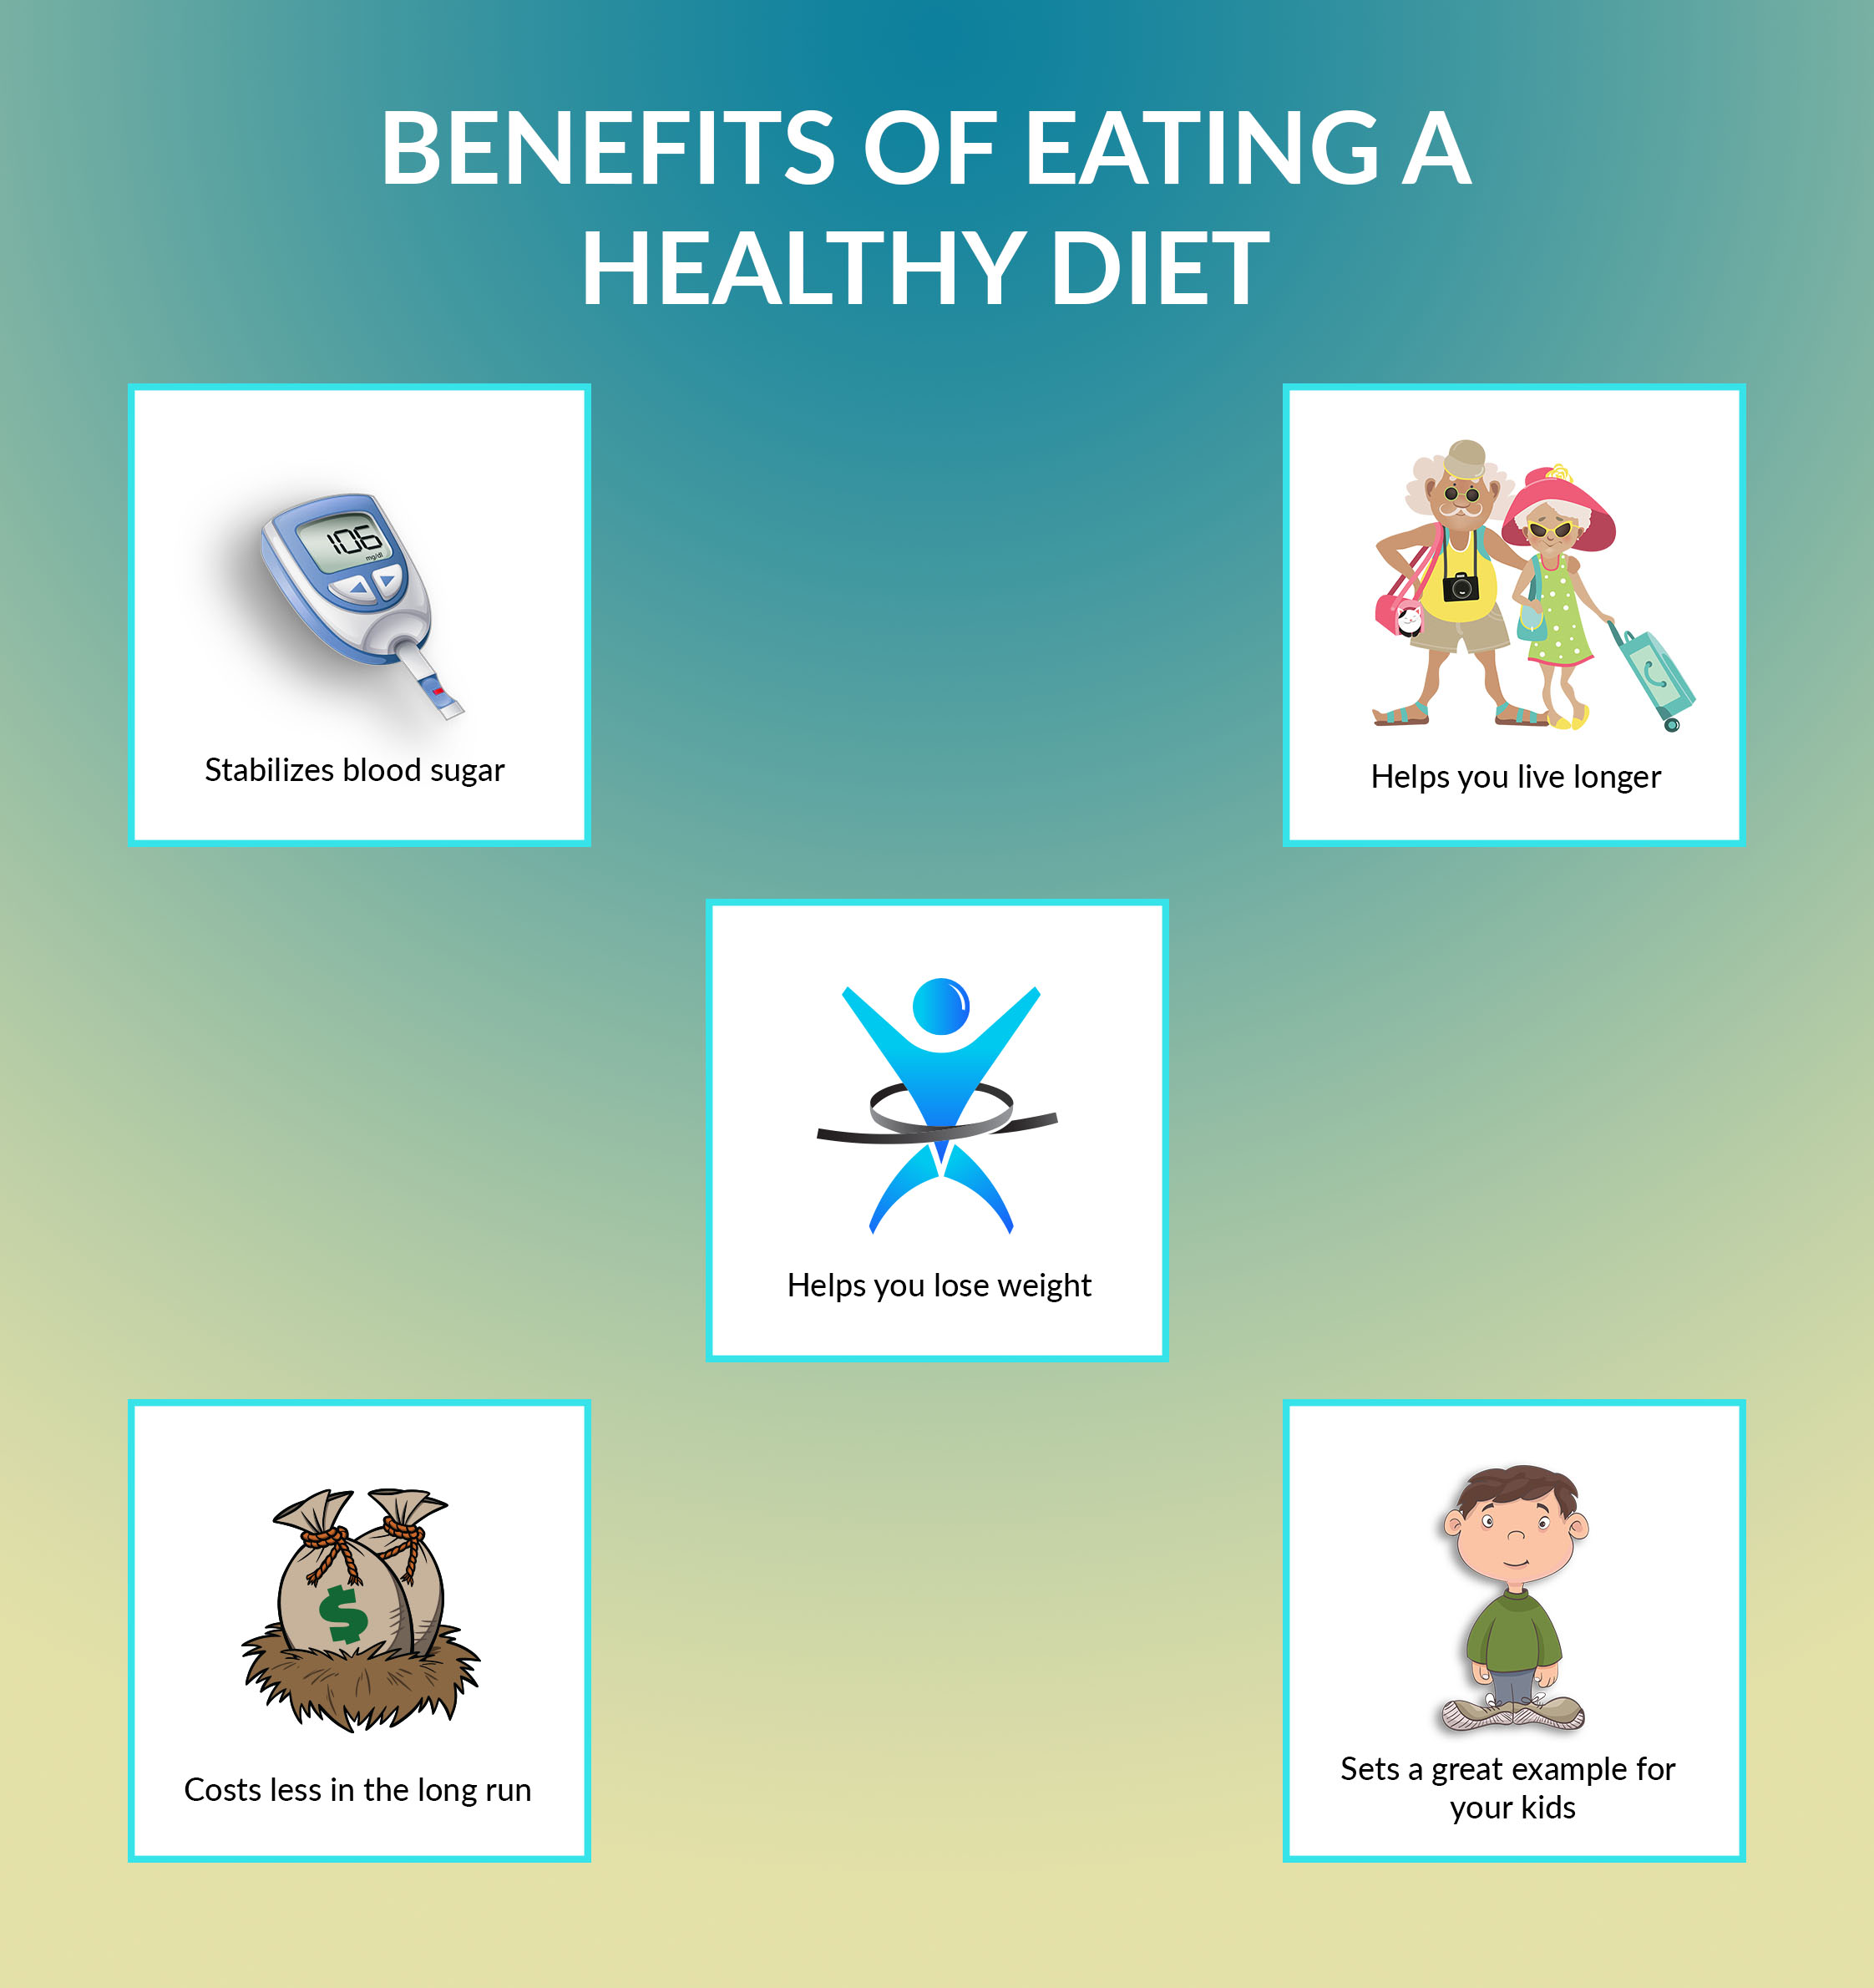 The benefits of having a balanced healthy diet